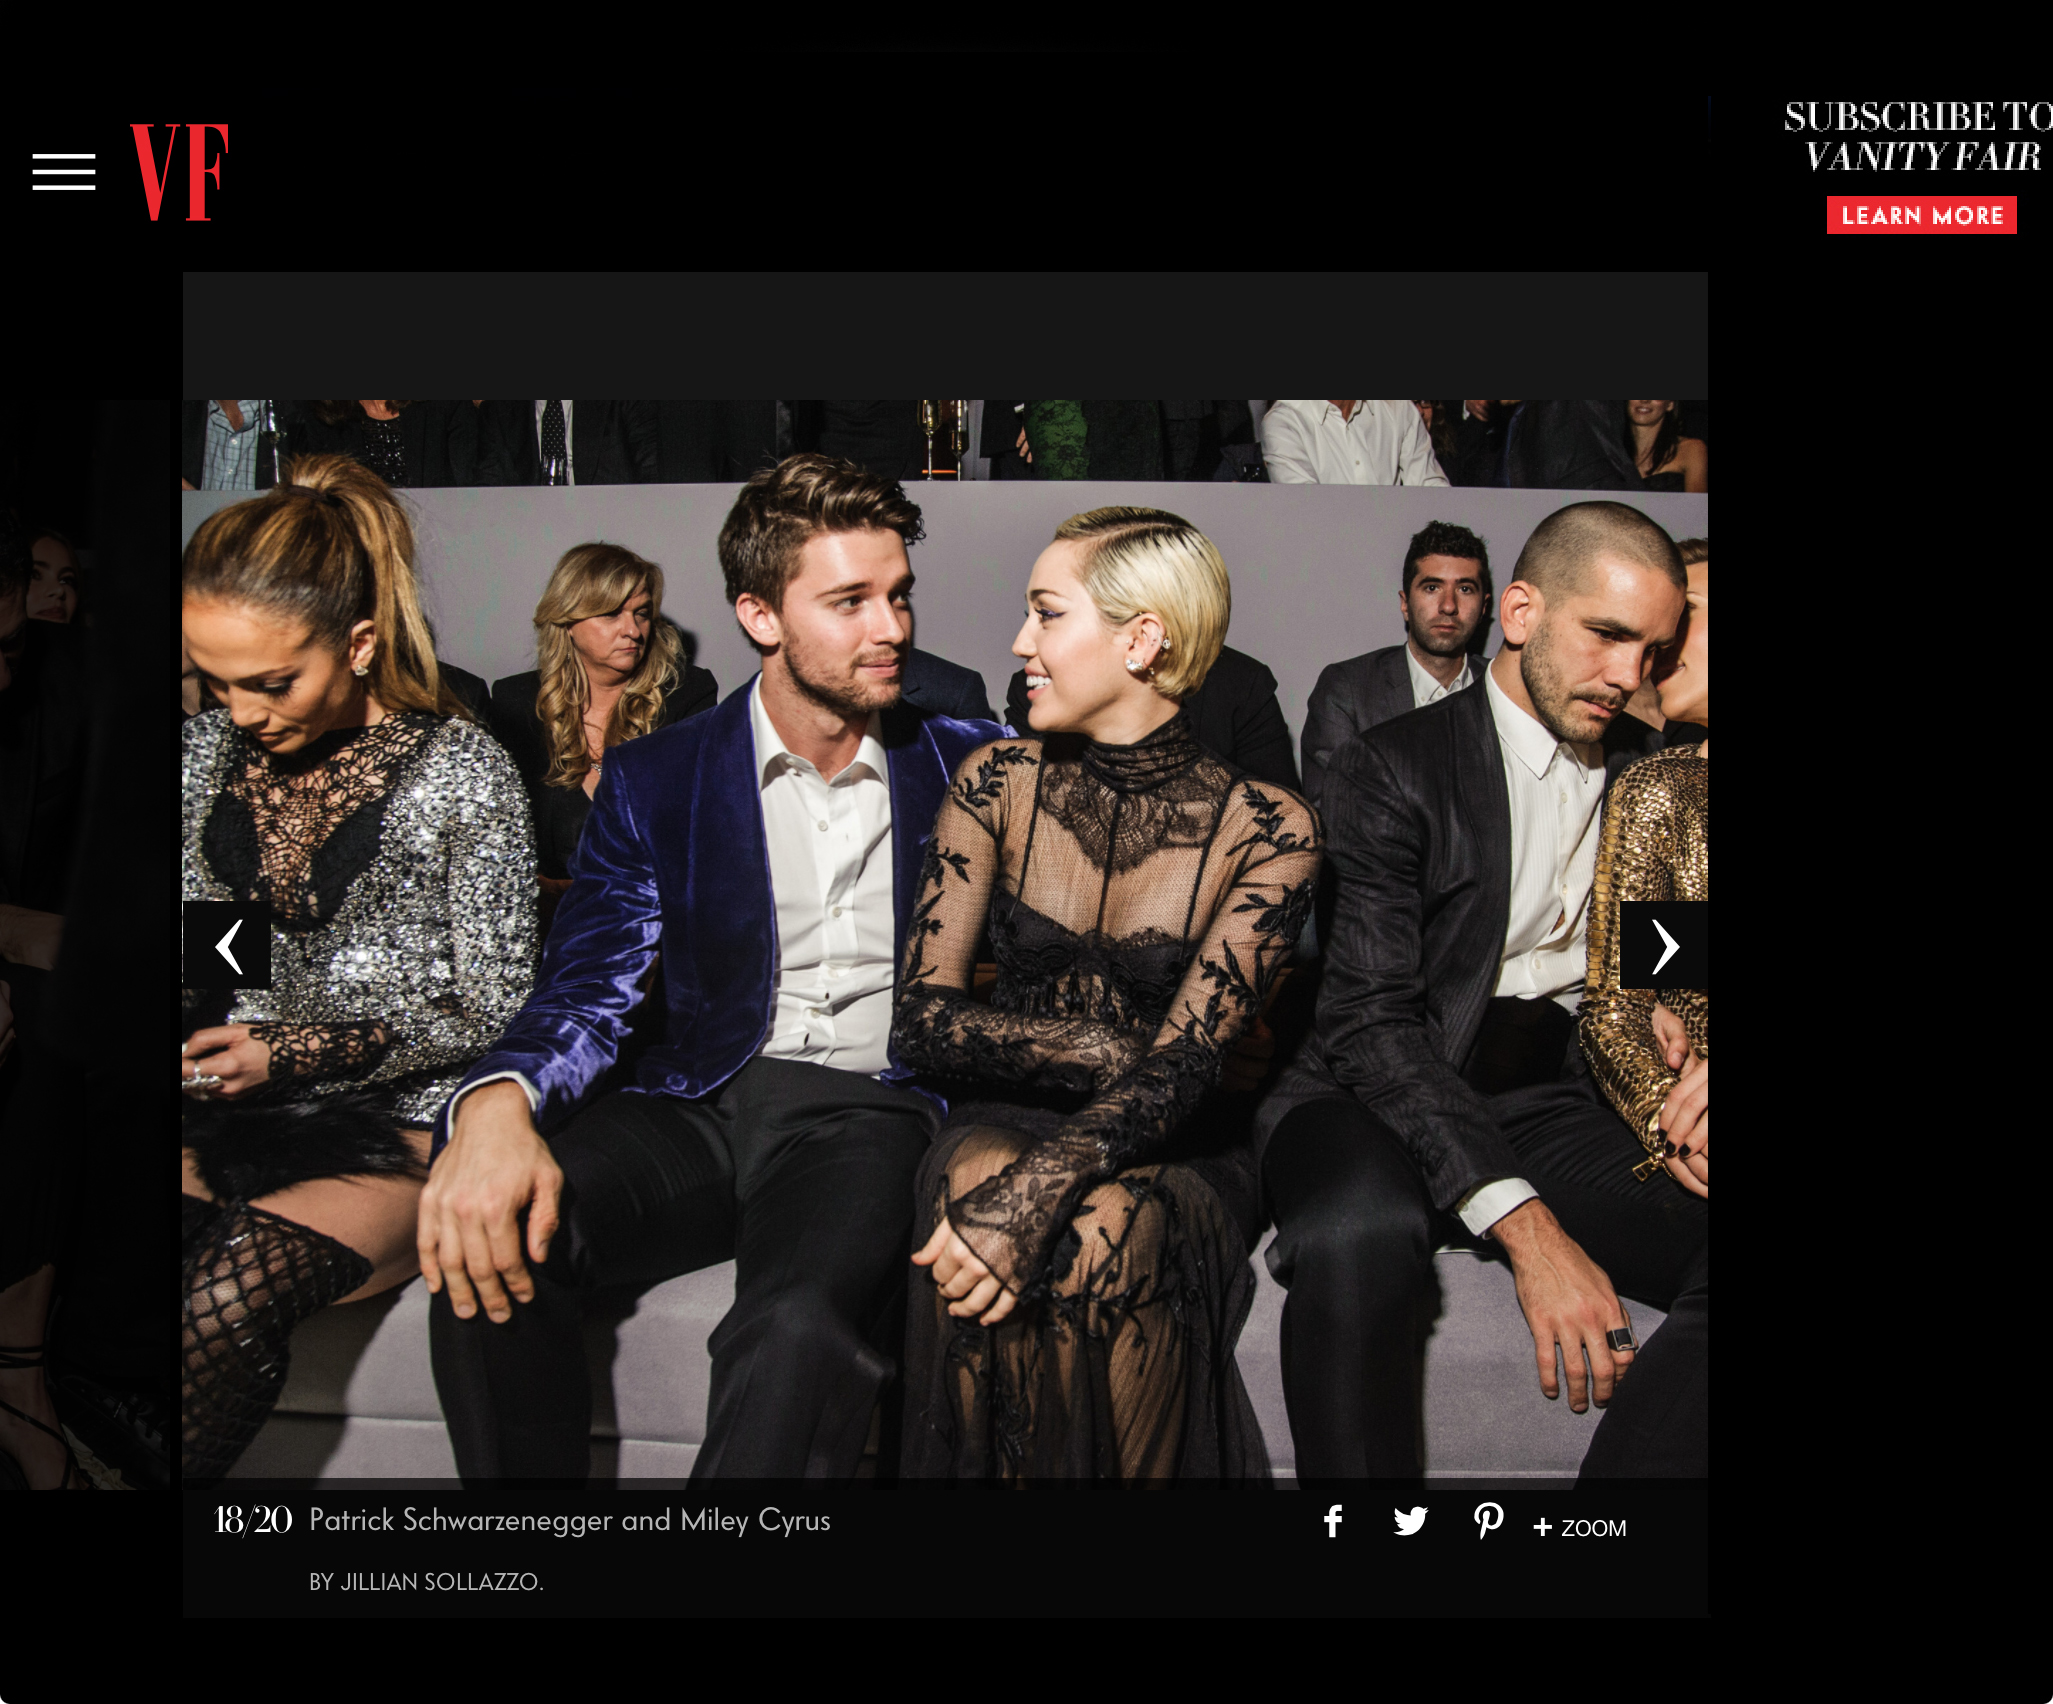 2015.02.21-Beyonce Gwyneth Miley and More Turned out for Tom Ford LA Show-Patrick Schwarzenegger and Miley Cyrus.jpg